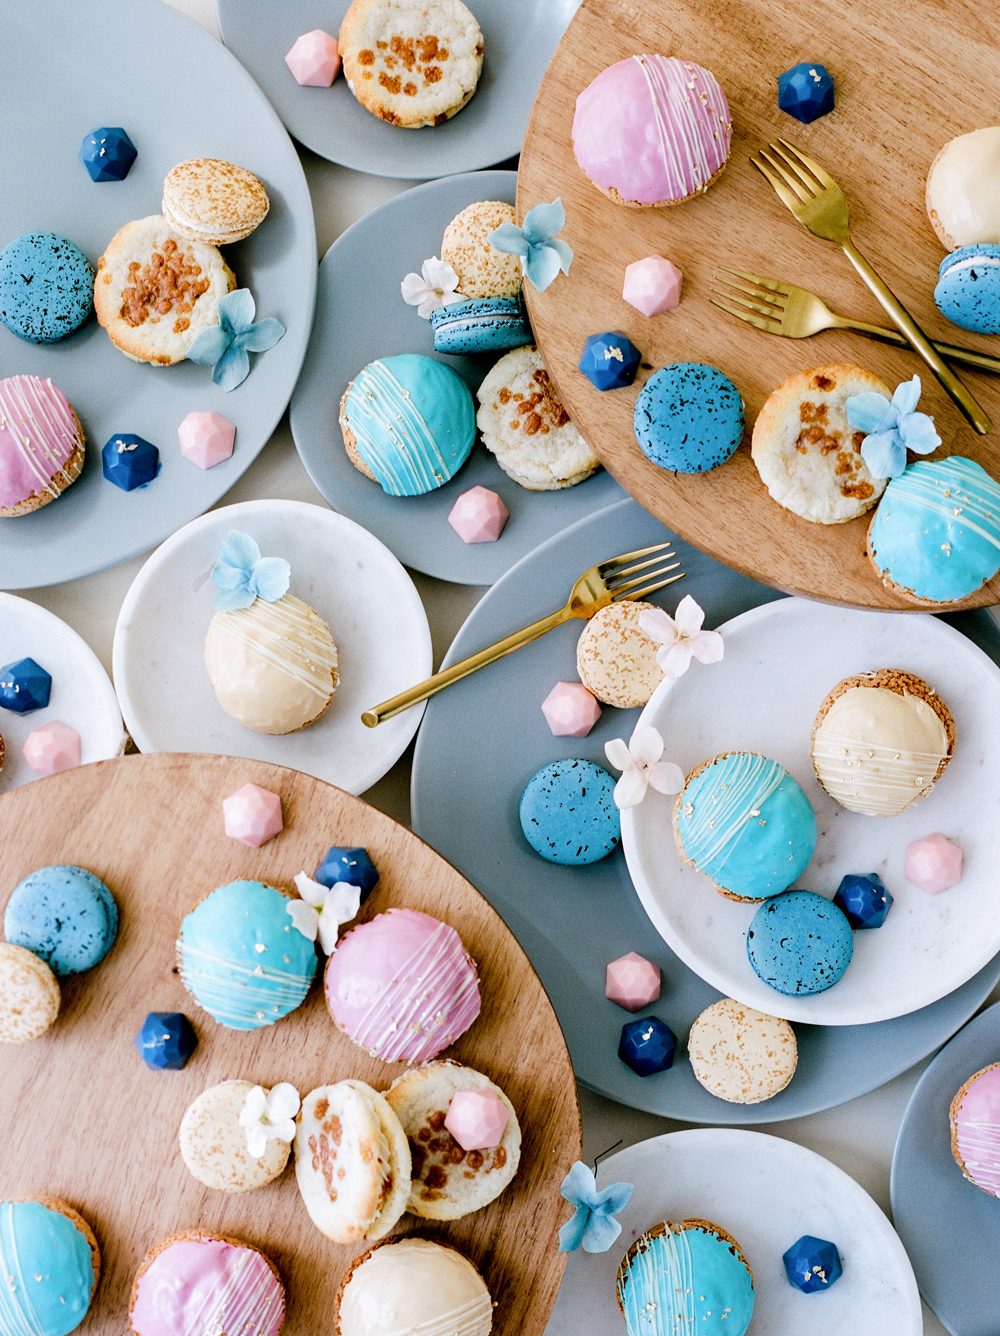 blue and pink macaroons and cream puffs